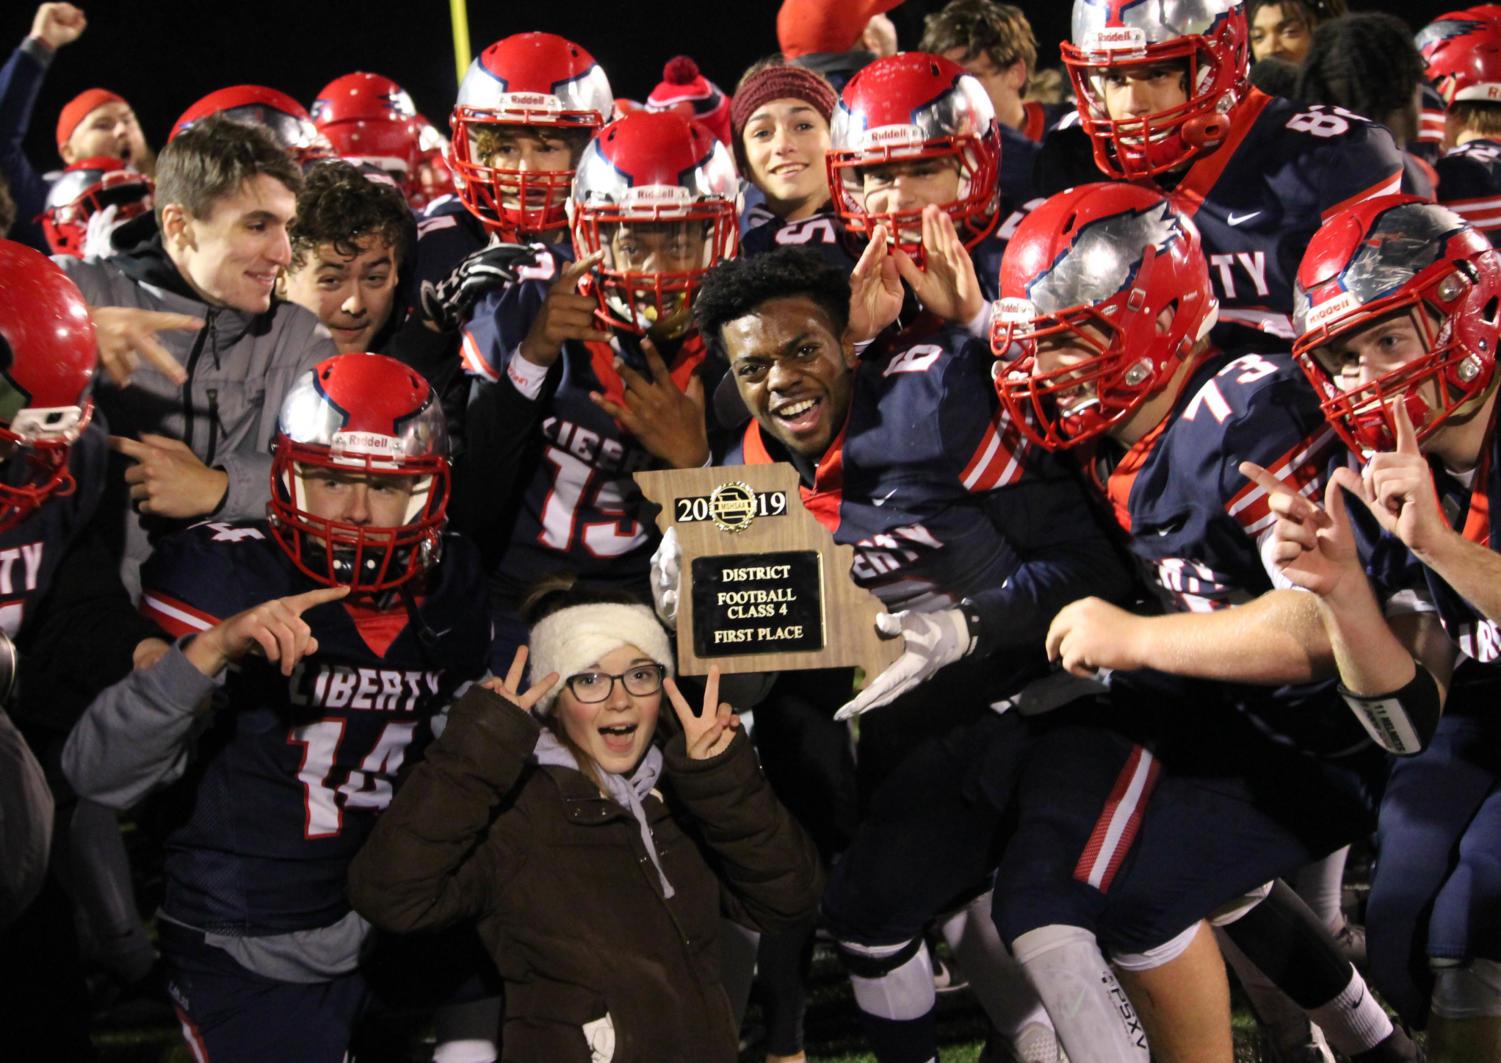 The Eagles celebrate their district championship moments after defeating Hannibal 23-6.